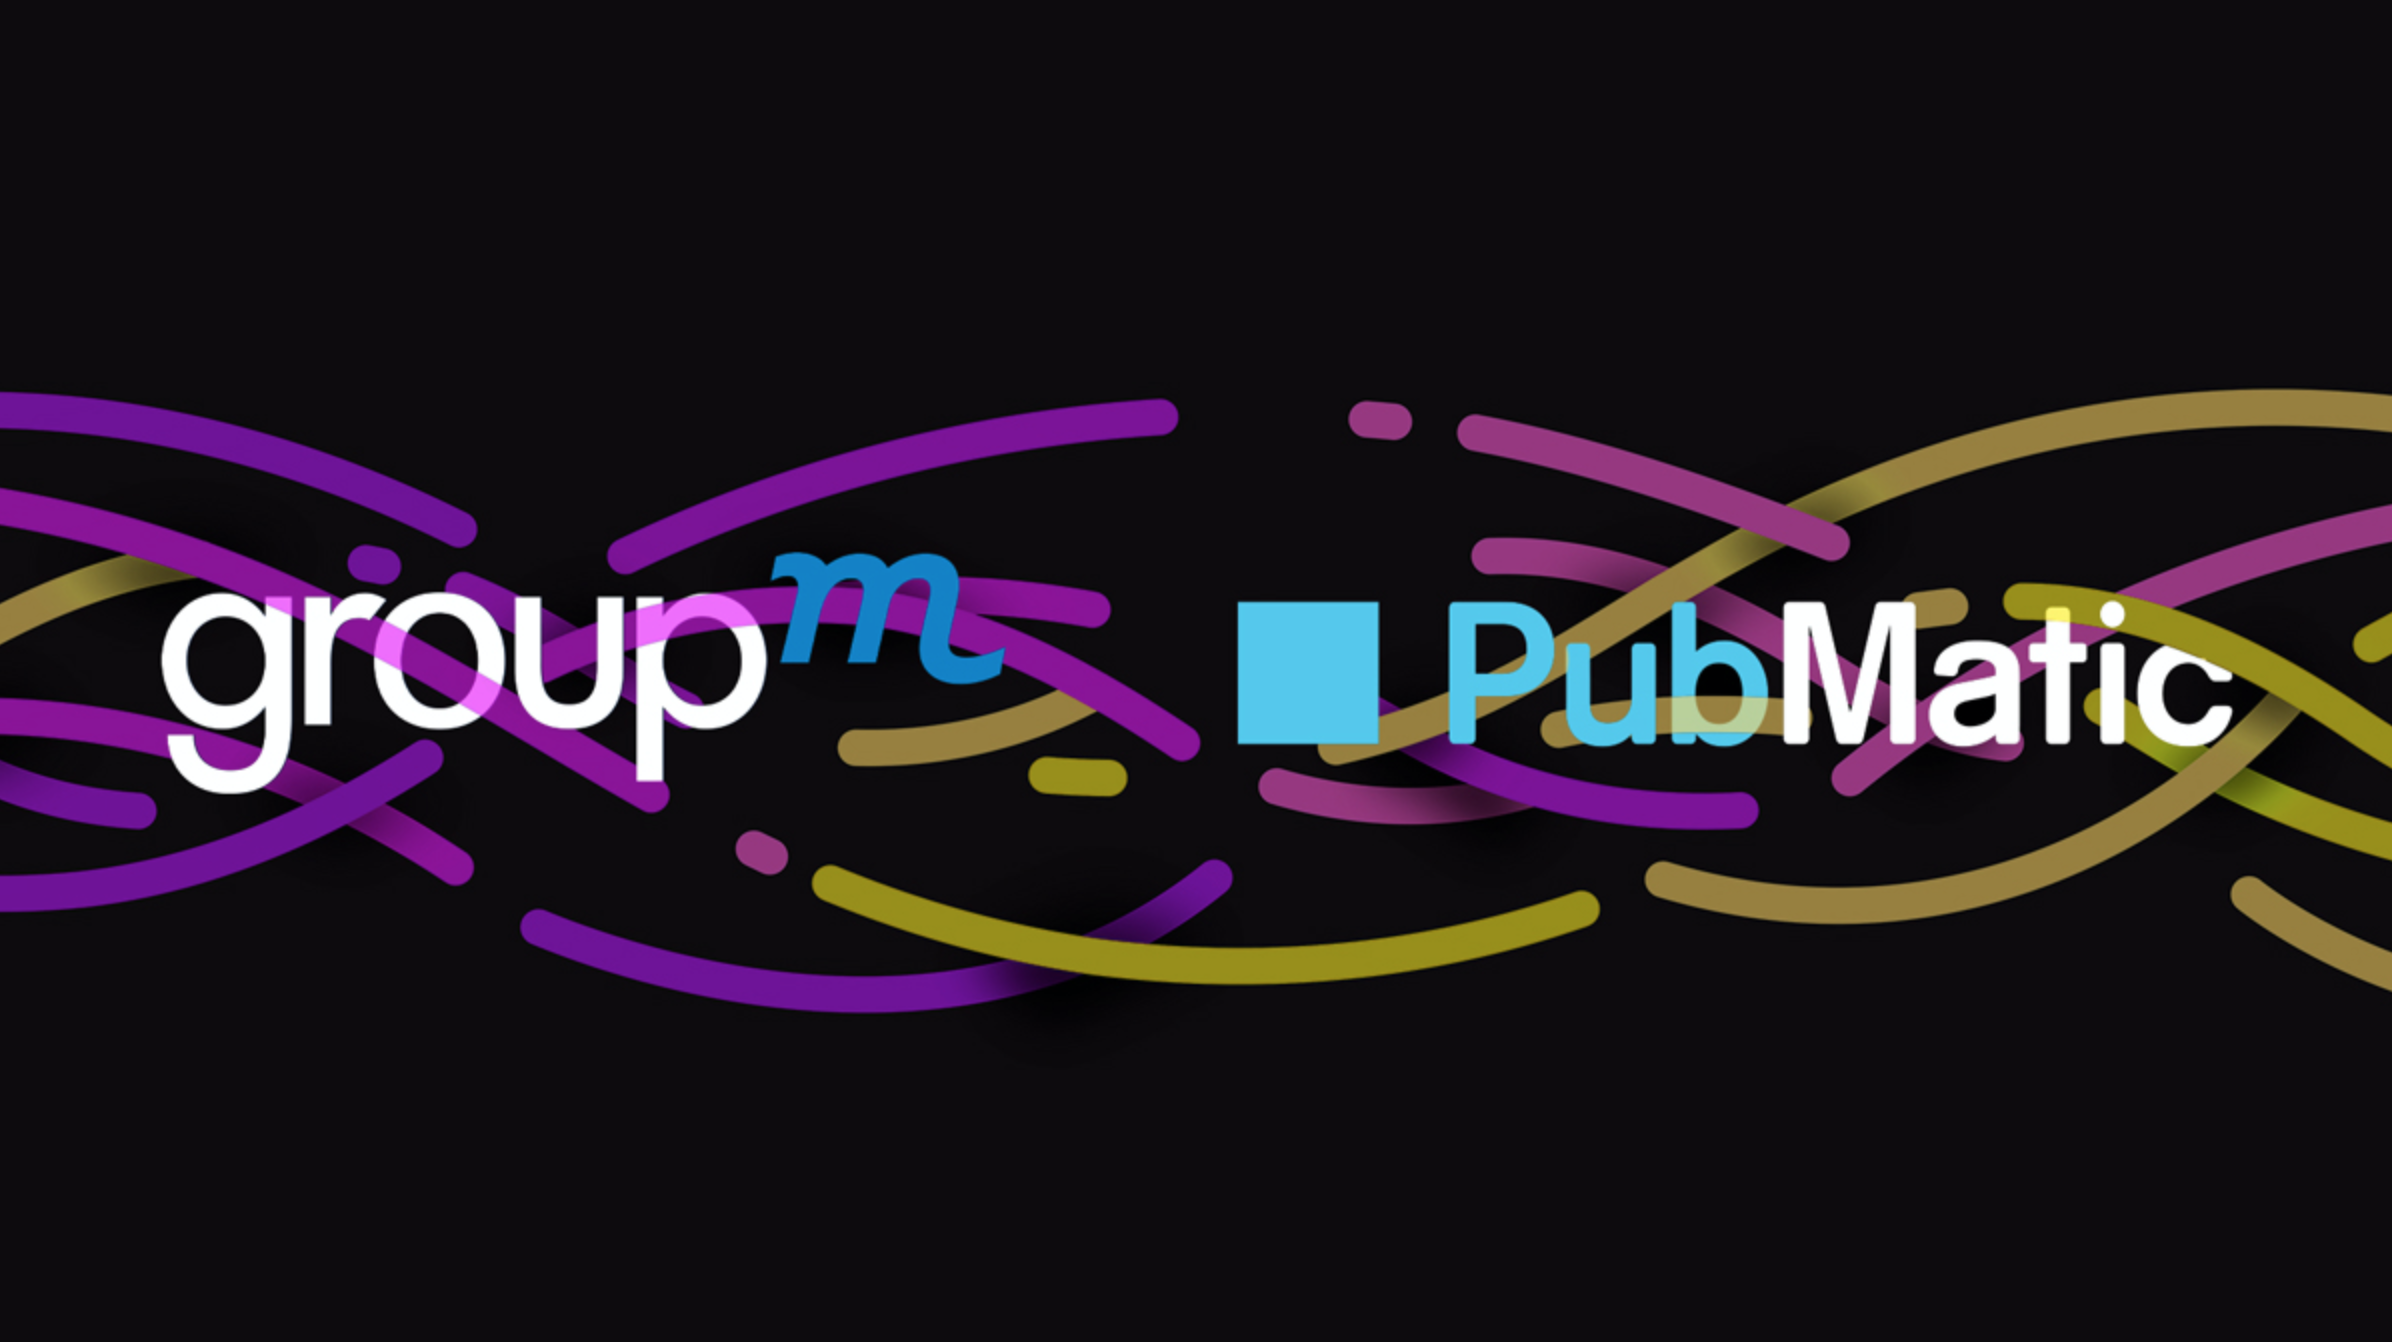 GroupM named PubMatic a preferred global SSP partner earlier this week.